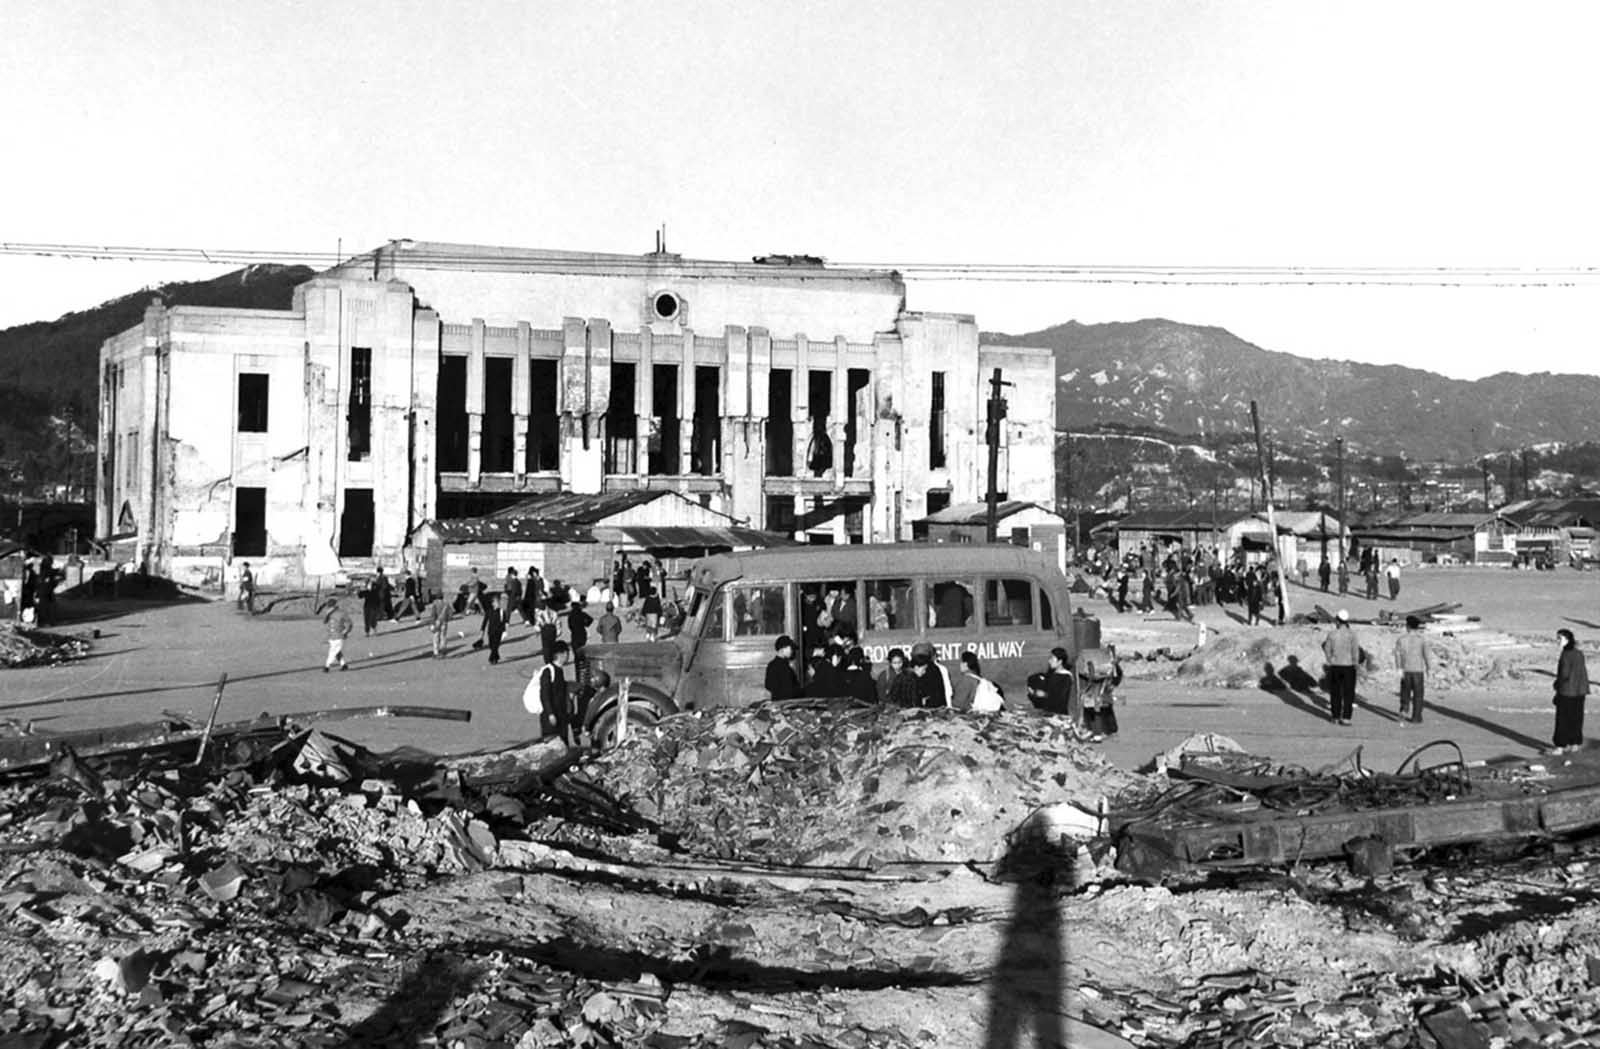 Civilians gather in front of the ruined Hiroshima Station, months after the bombing.